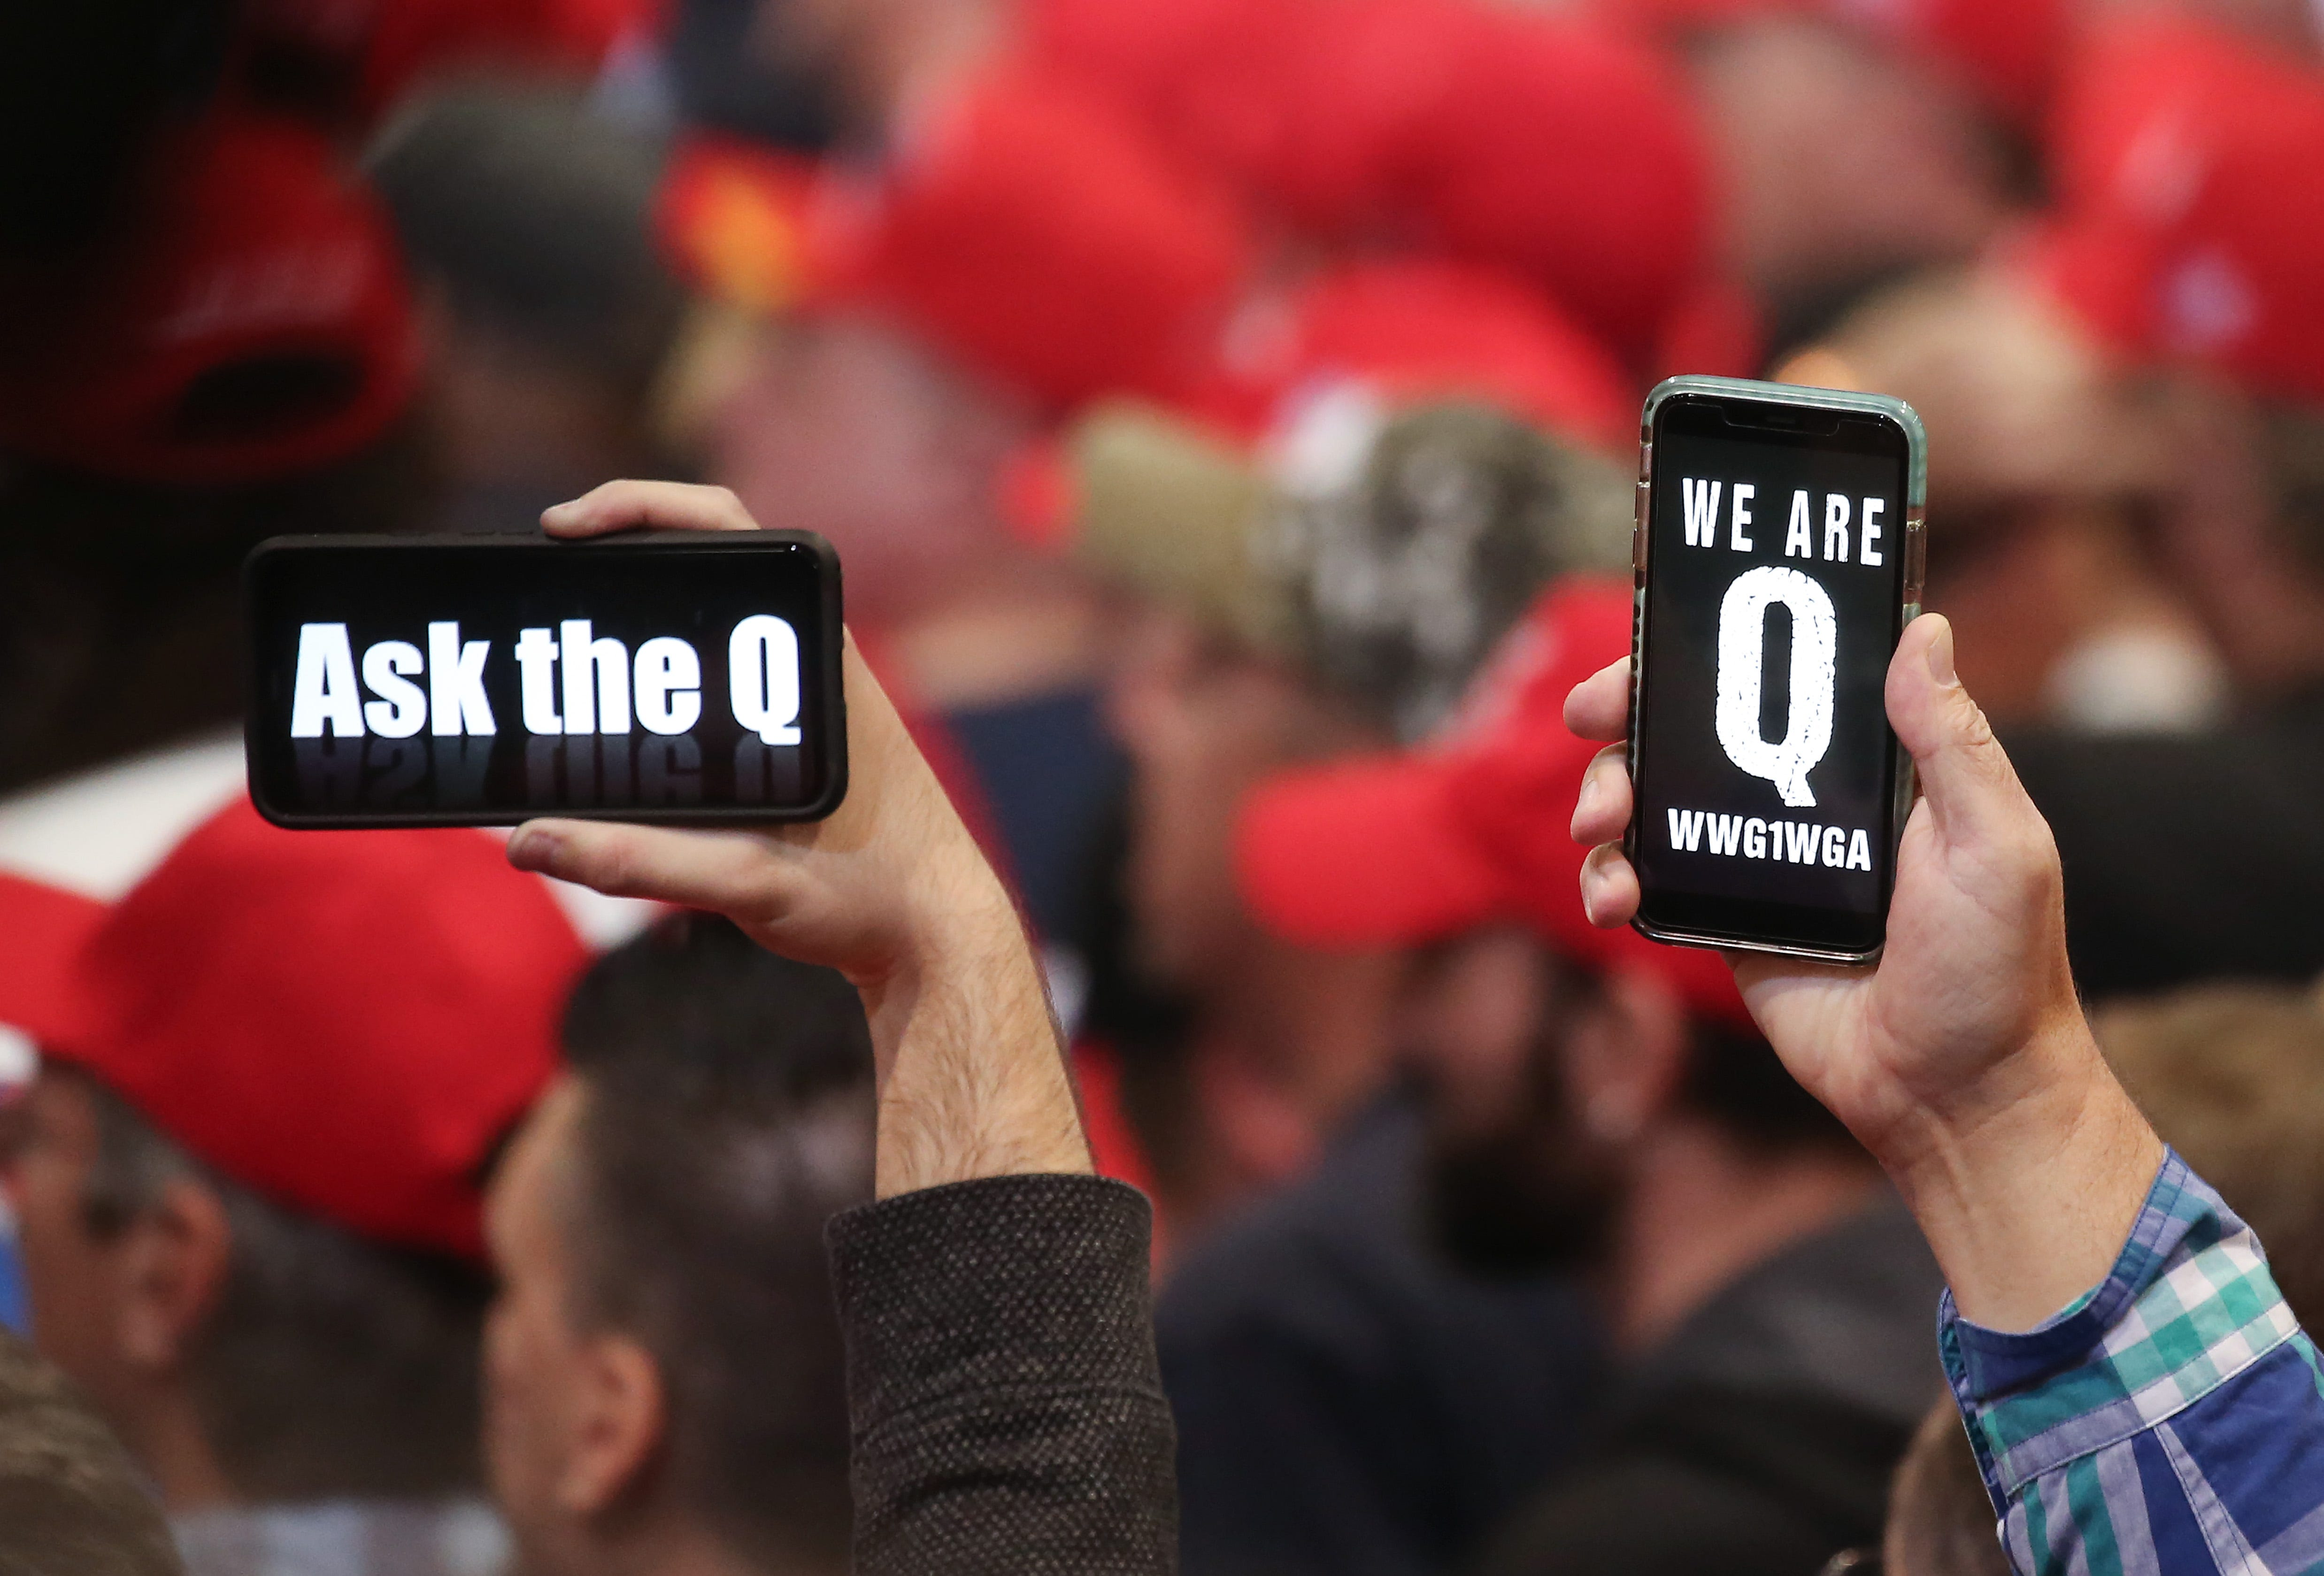 Donald Trump supporters hold up phones referring to the QAnon conspiracy theory at a campaign rally in Las Vegas on Feb. 21, 2020.